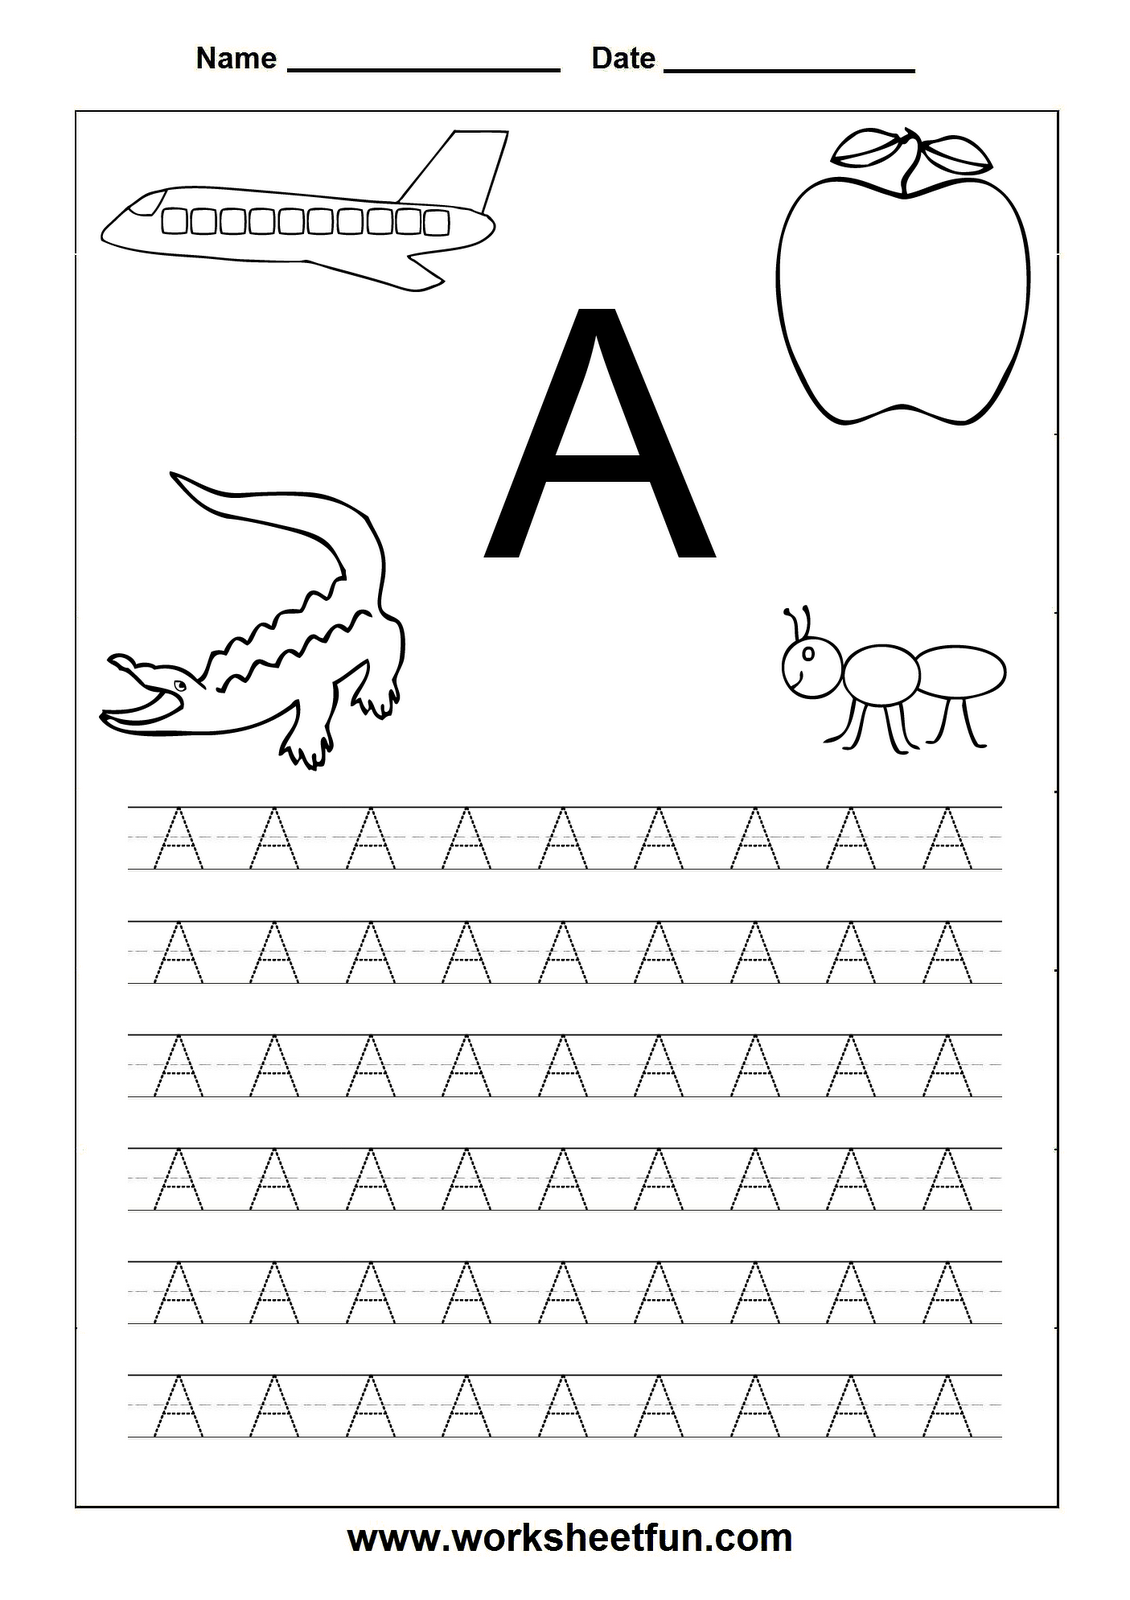 A Z Capital Letter Tracing Worksheets There Are Plenty More Worksheets On Various Subjects On